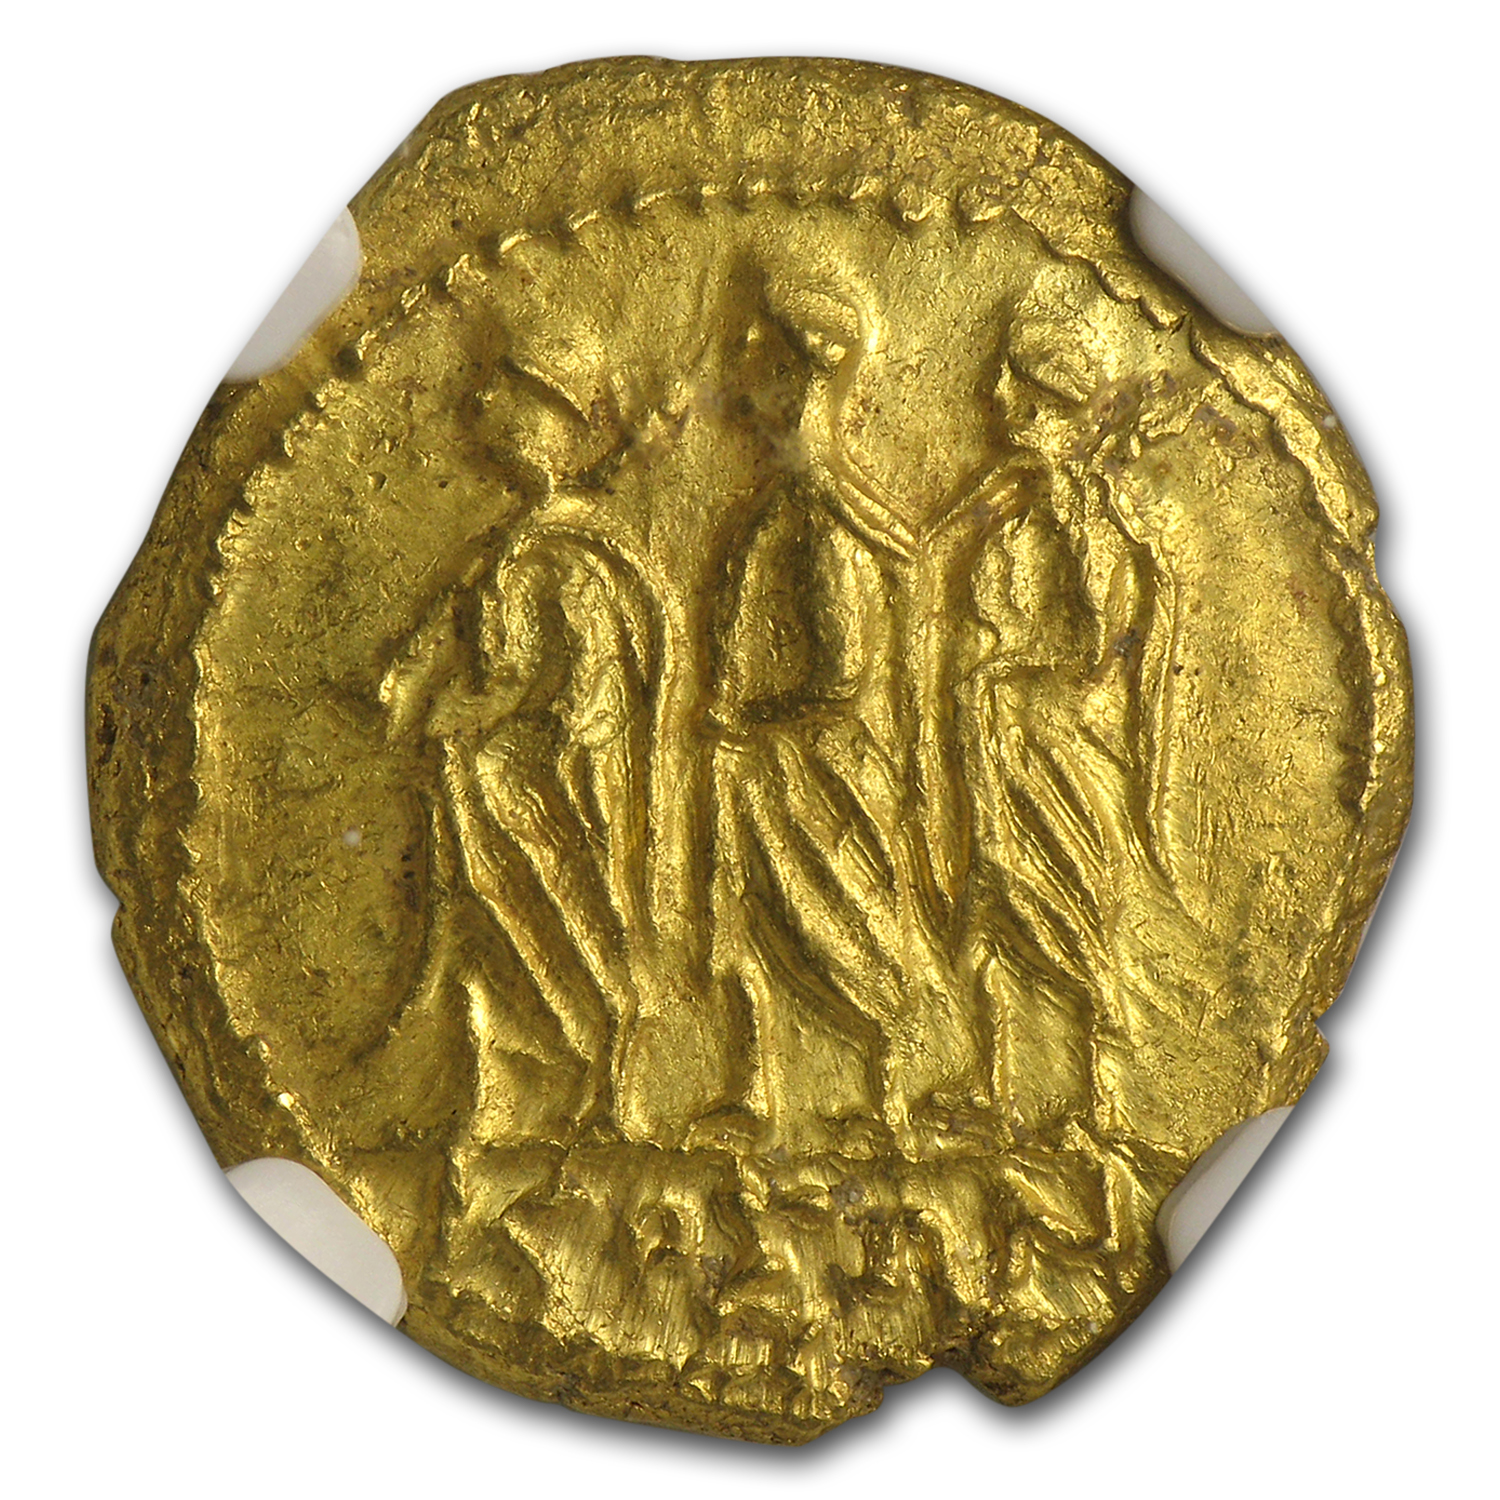 Thracian/Scythian Gold Stater (1st Century BC) Ch MS NGC